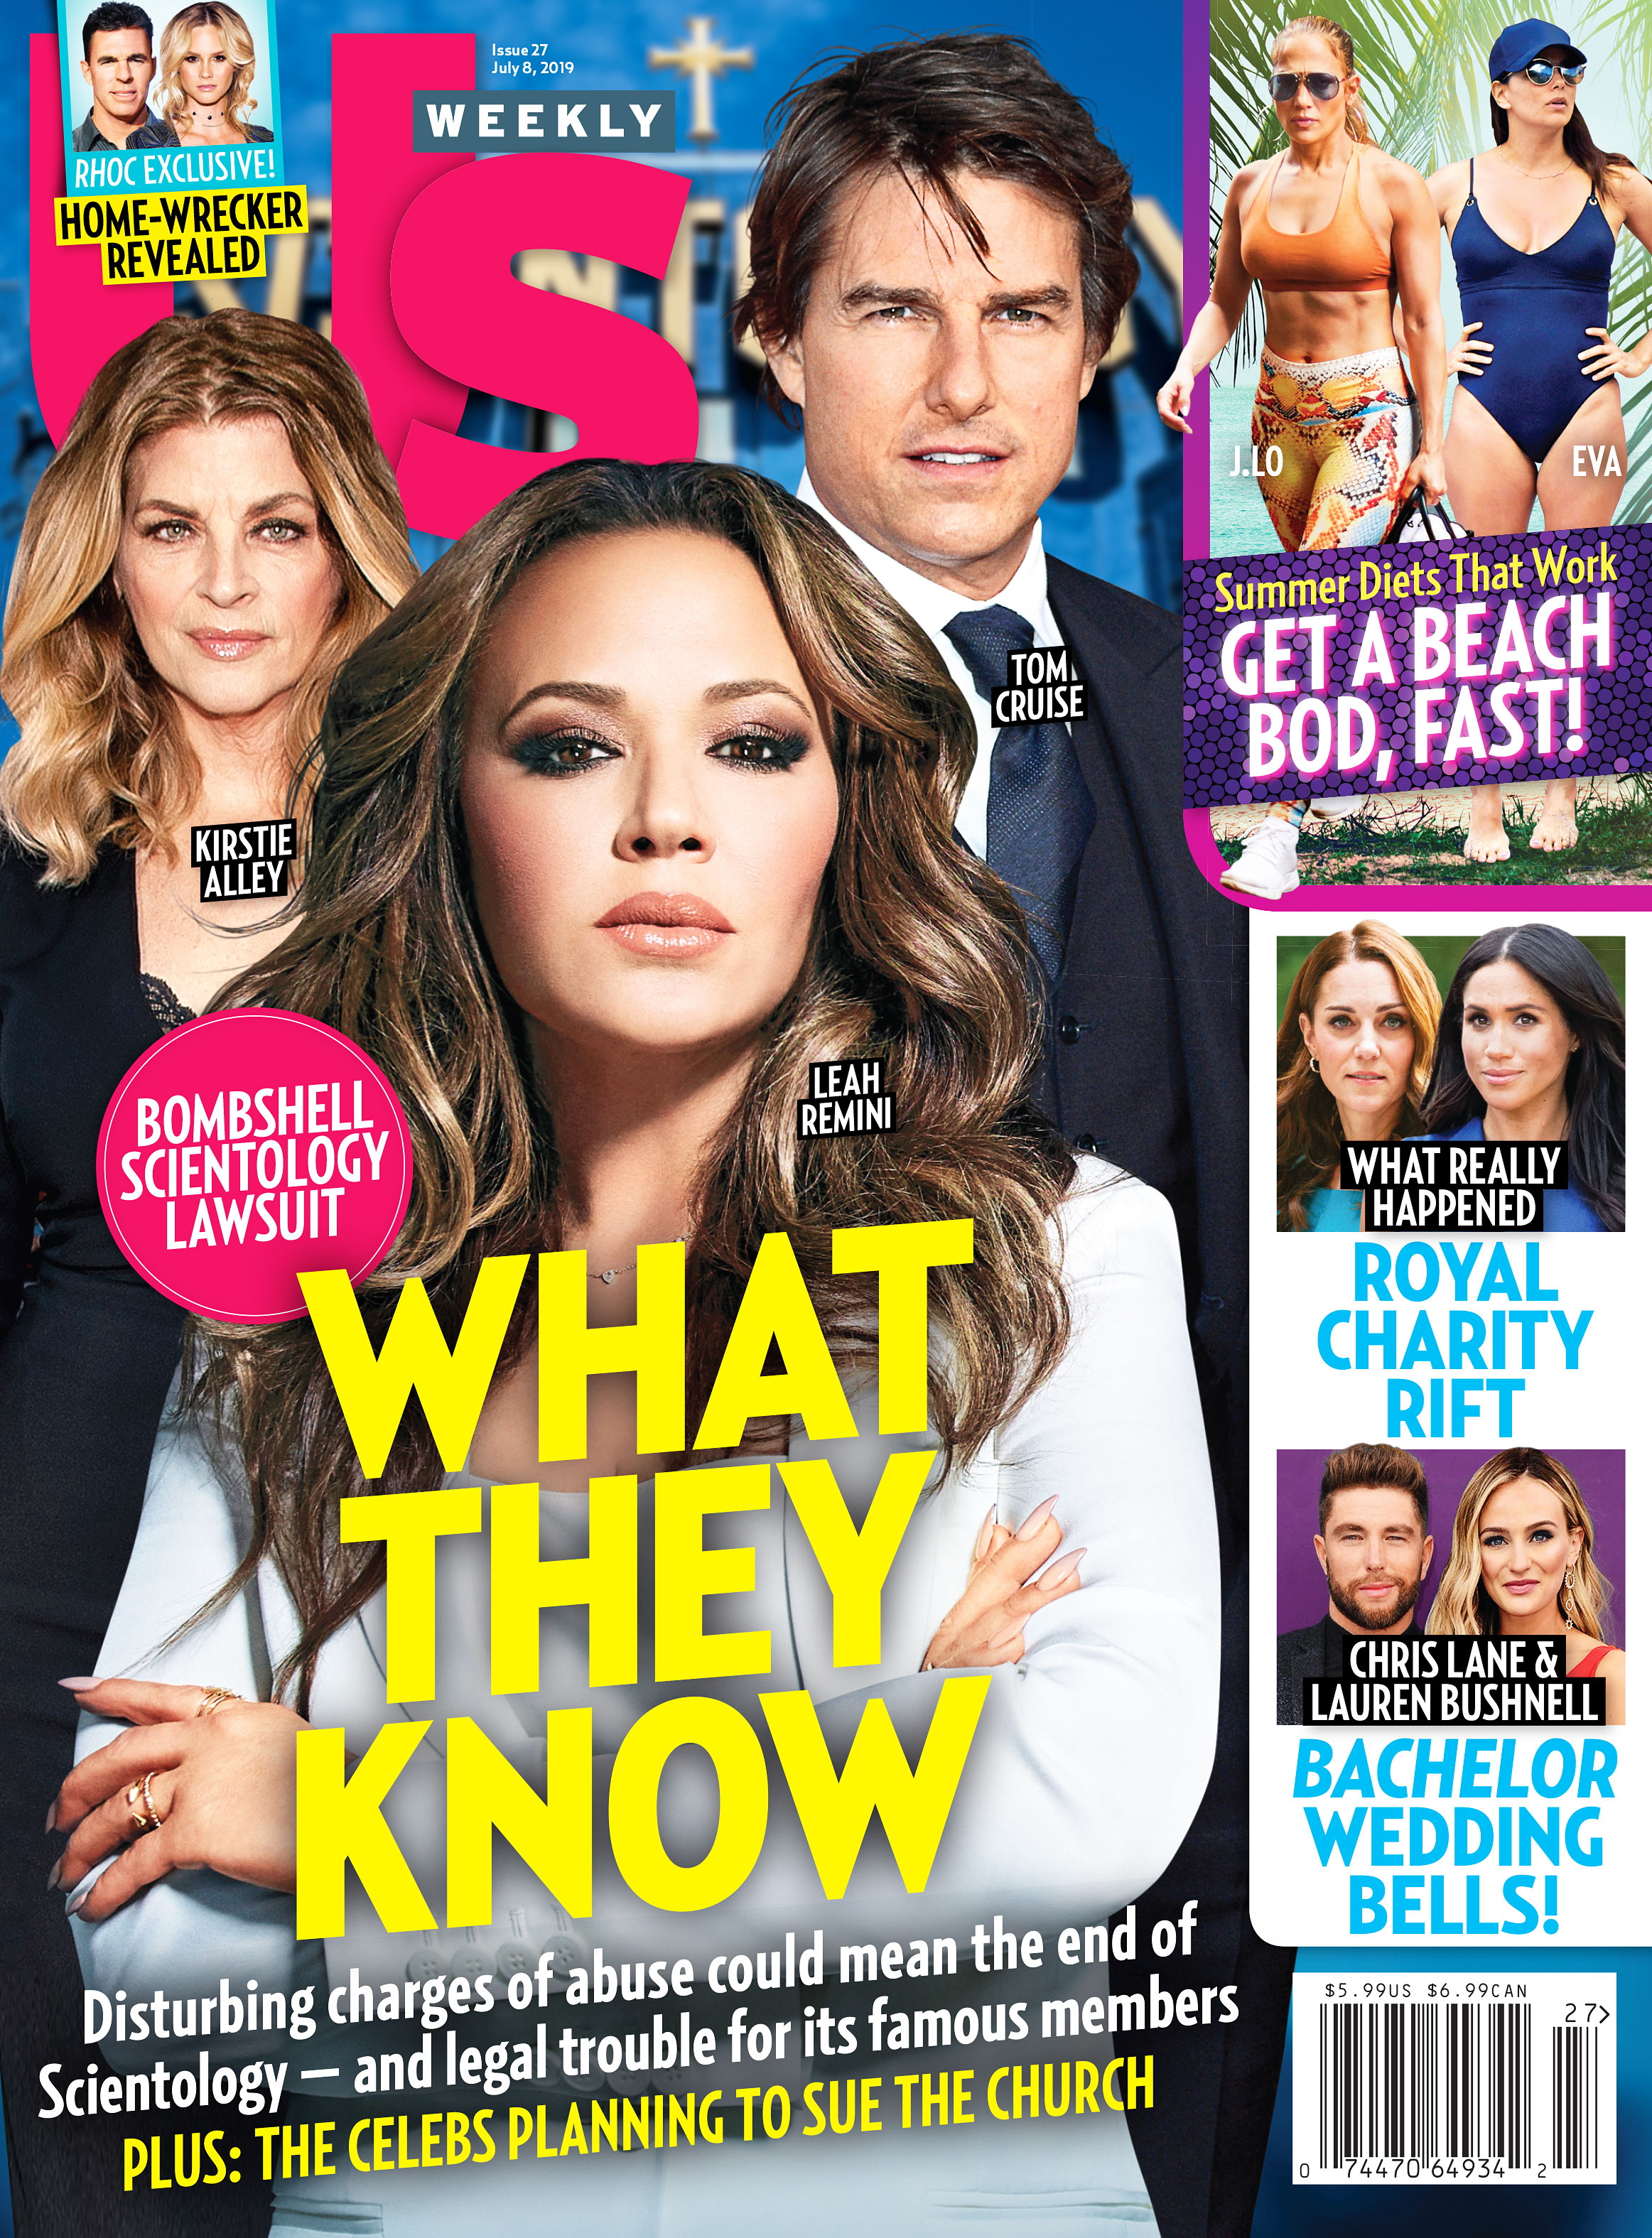 UW2719 Us Weekly Cover Scientology